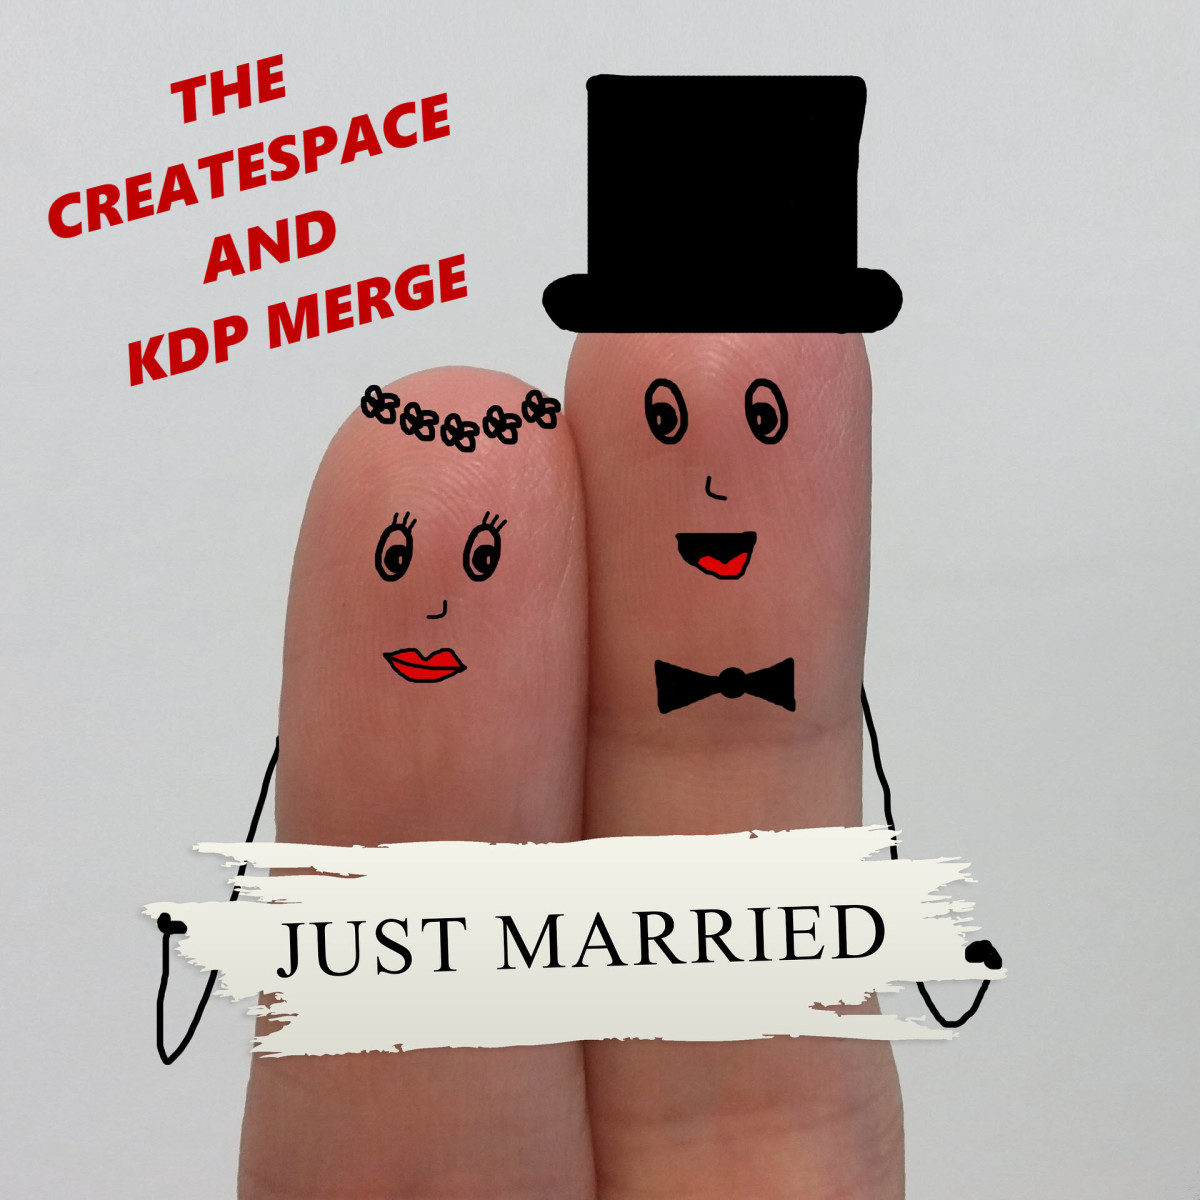 The CreateSpace and KDP Merger